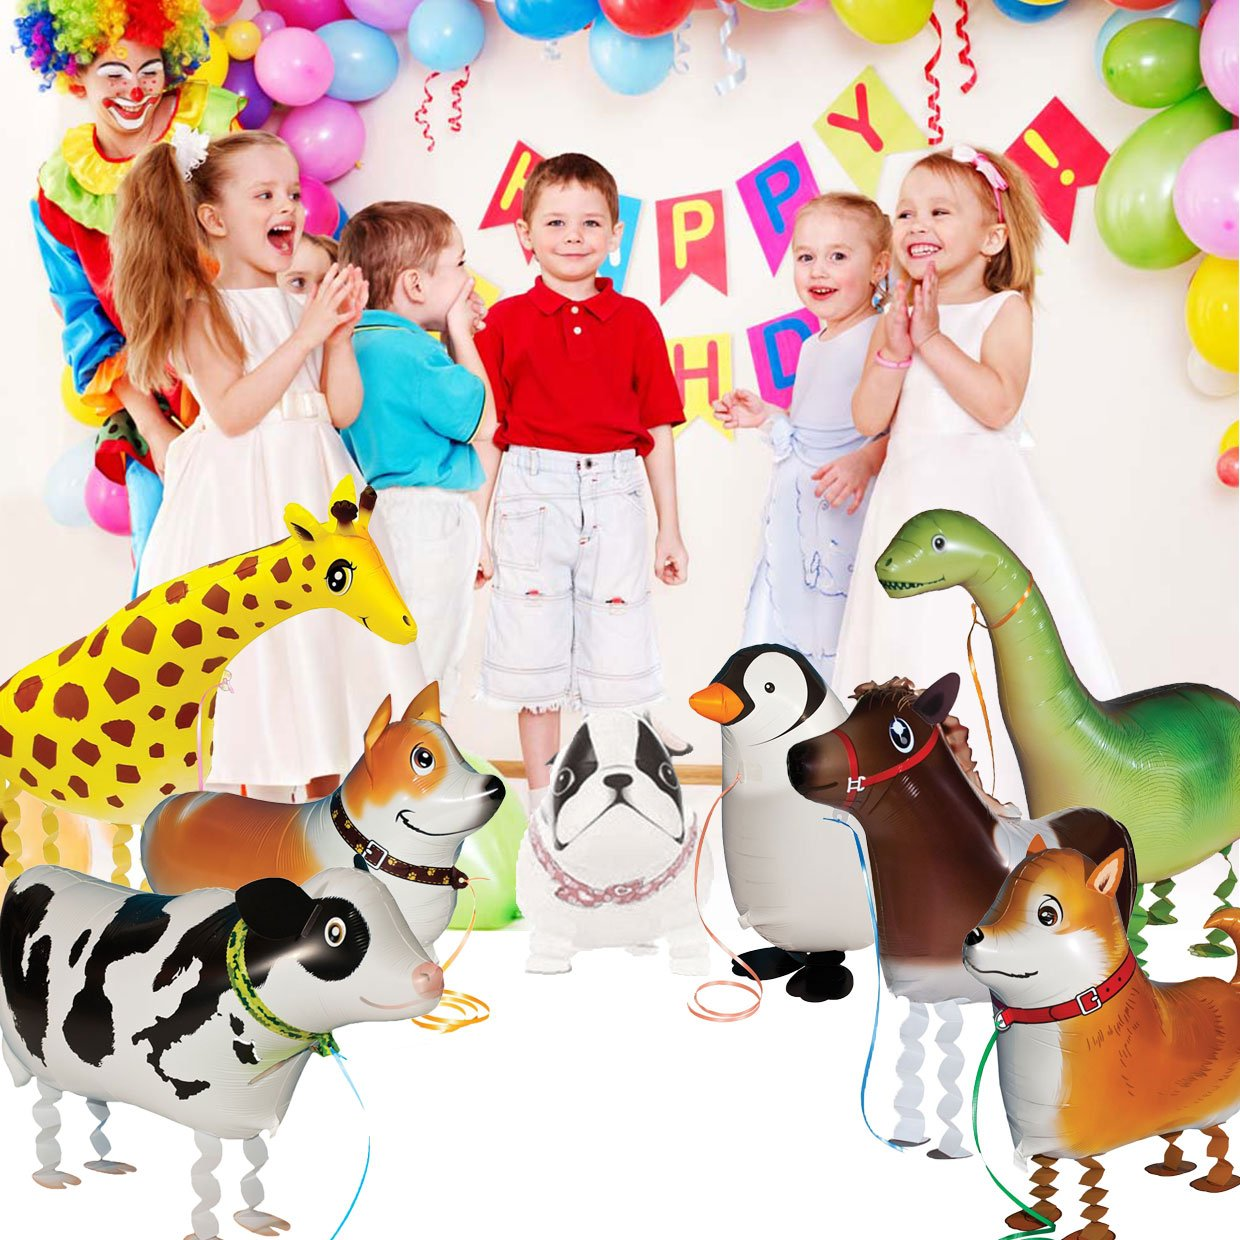 5pcs Walking Pet Animal Balloons Kids toys Party Favors Gifts for Girls Air Walker group-F by Merveilleux (Image #3)